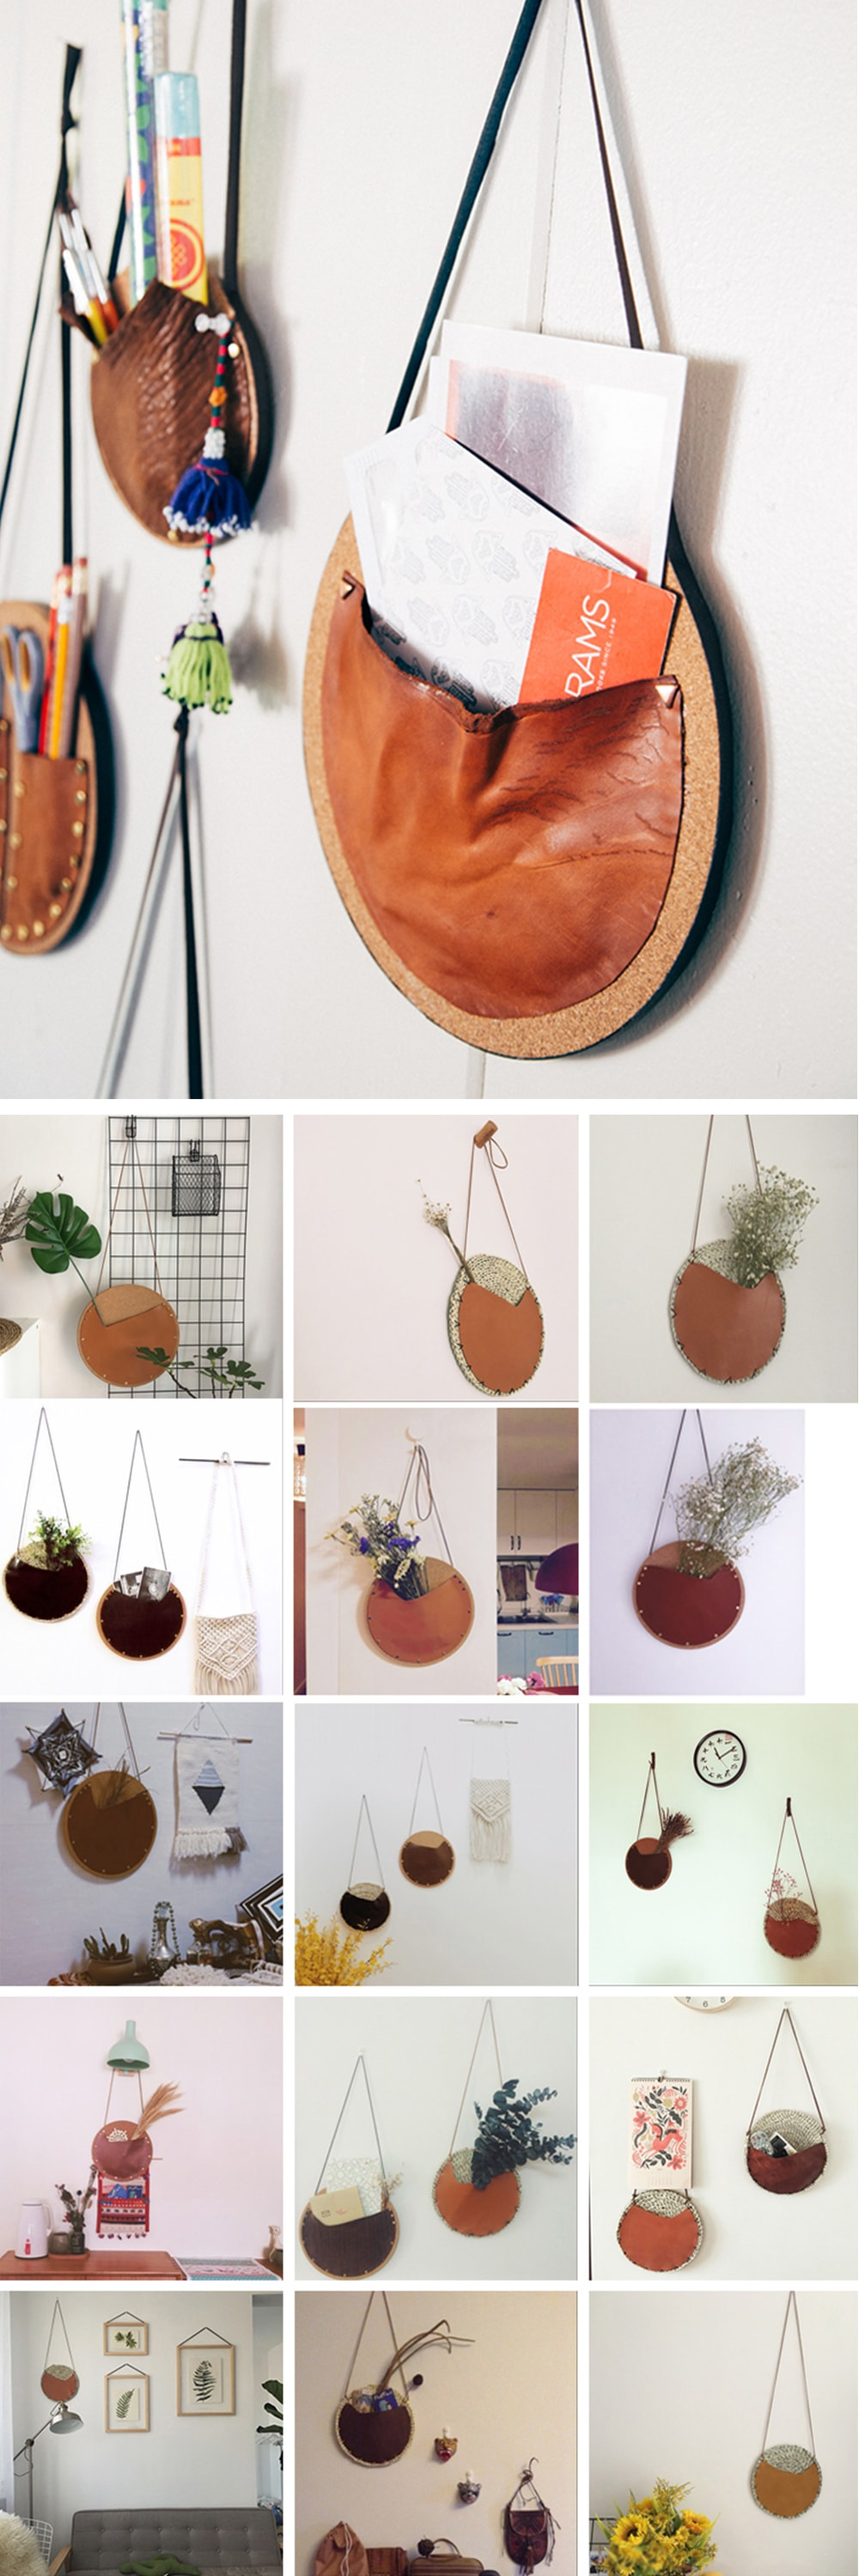 Wall Hanging Bag Decorative Display For Your Room